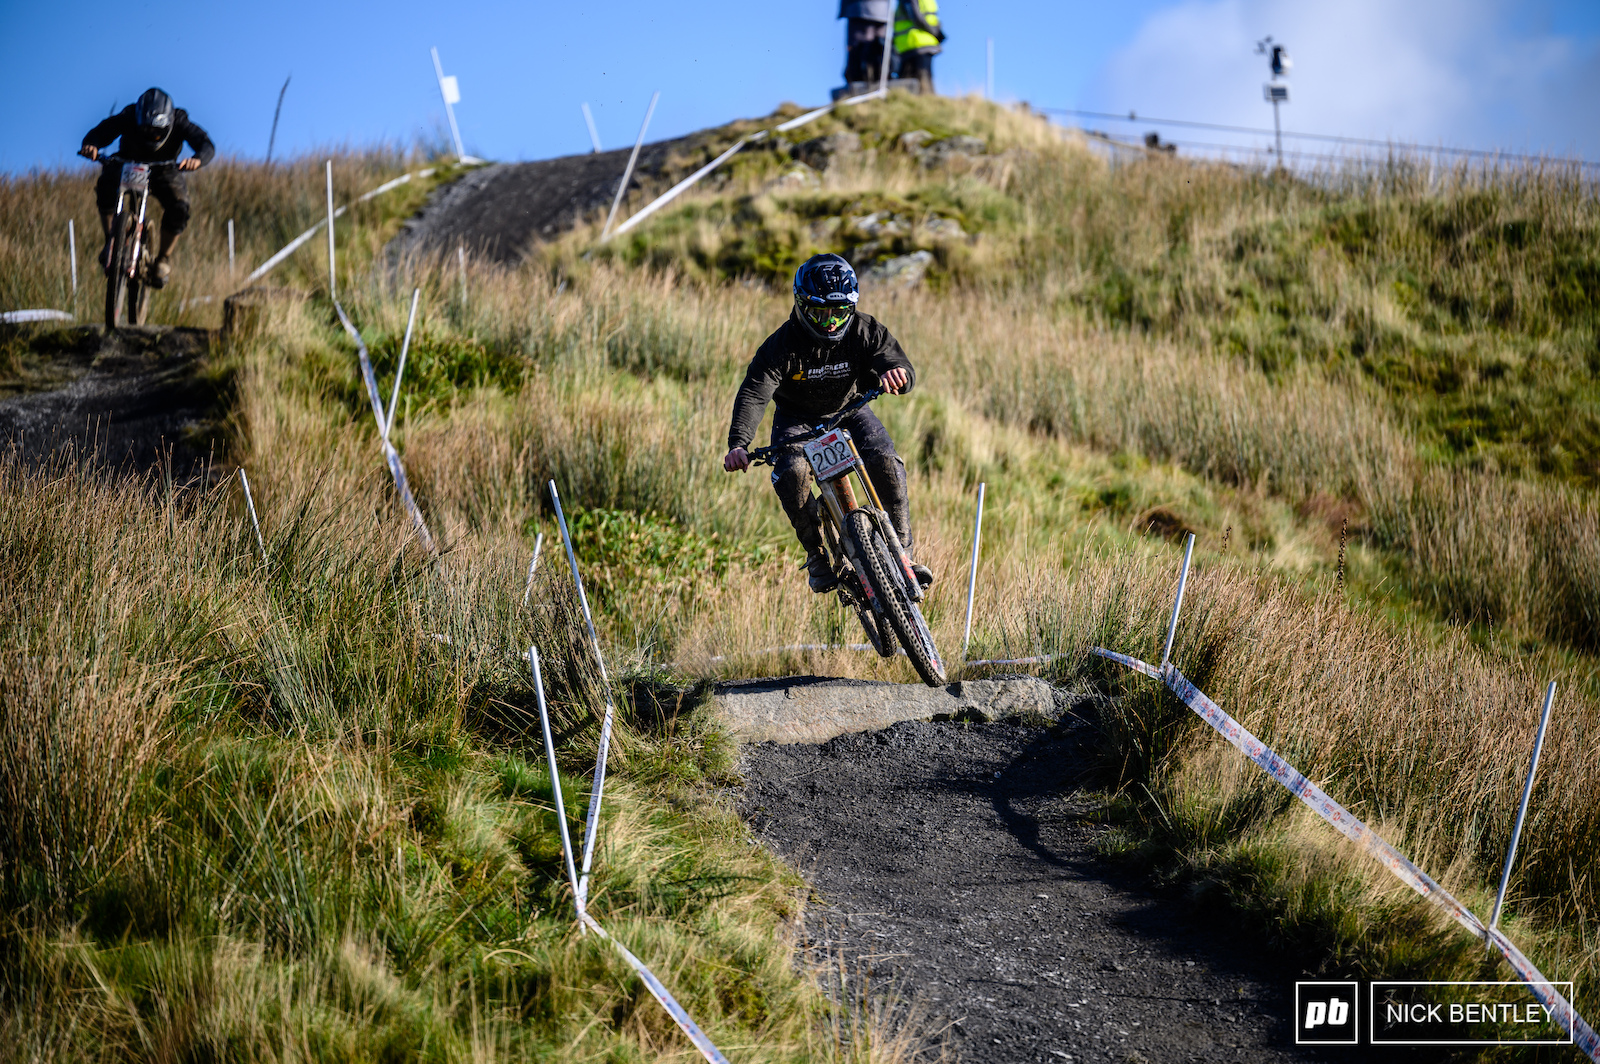 Morning practice was busy with all the riders wanting to take full advantage of the fast uplifts and the October Welsh sunshine